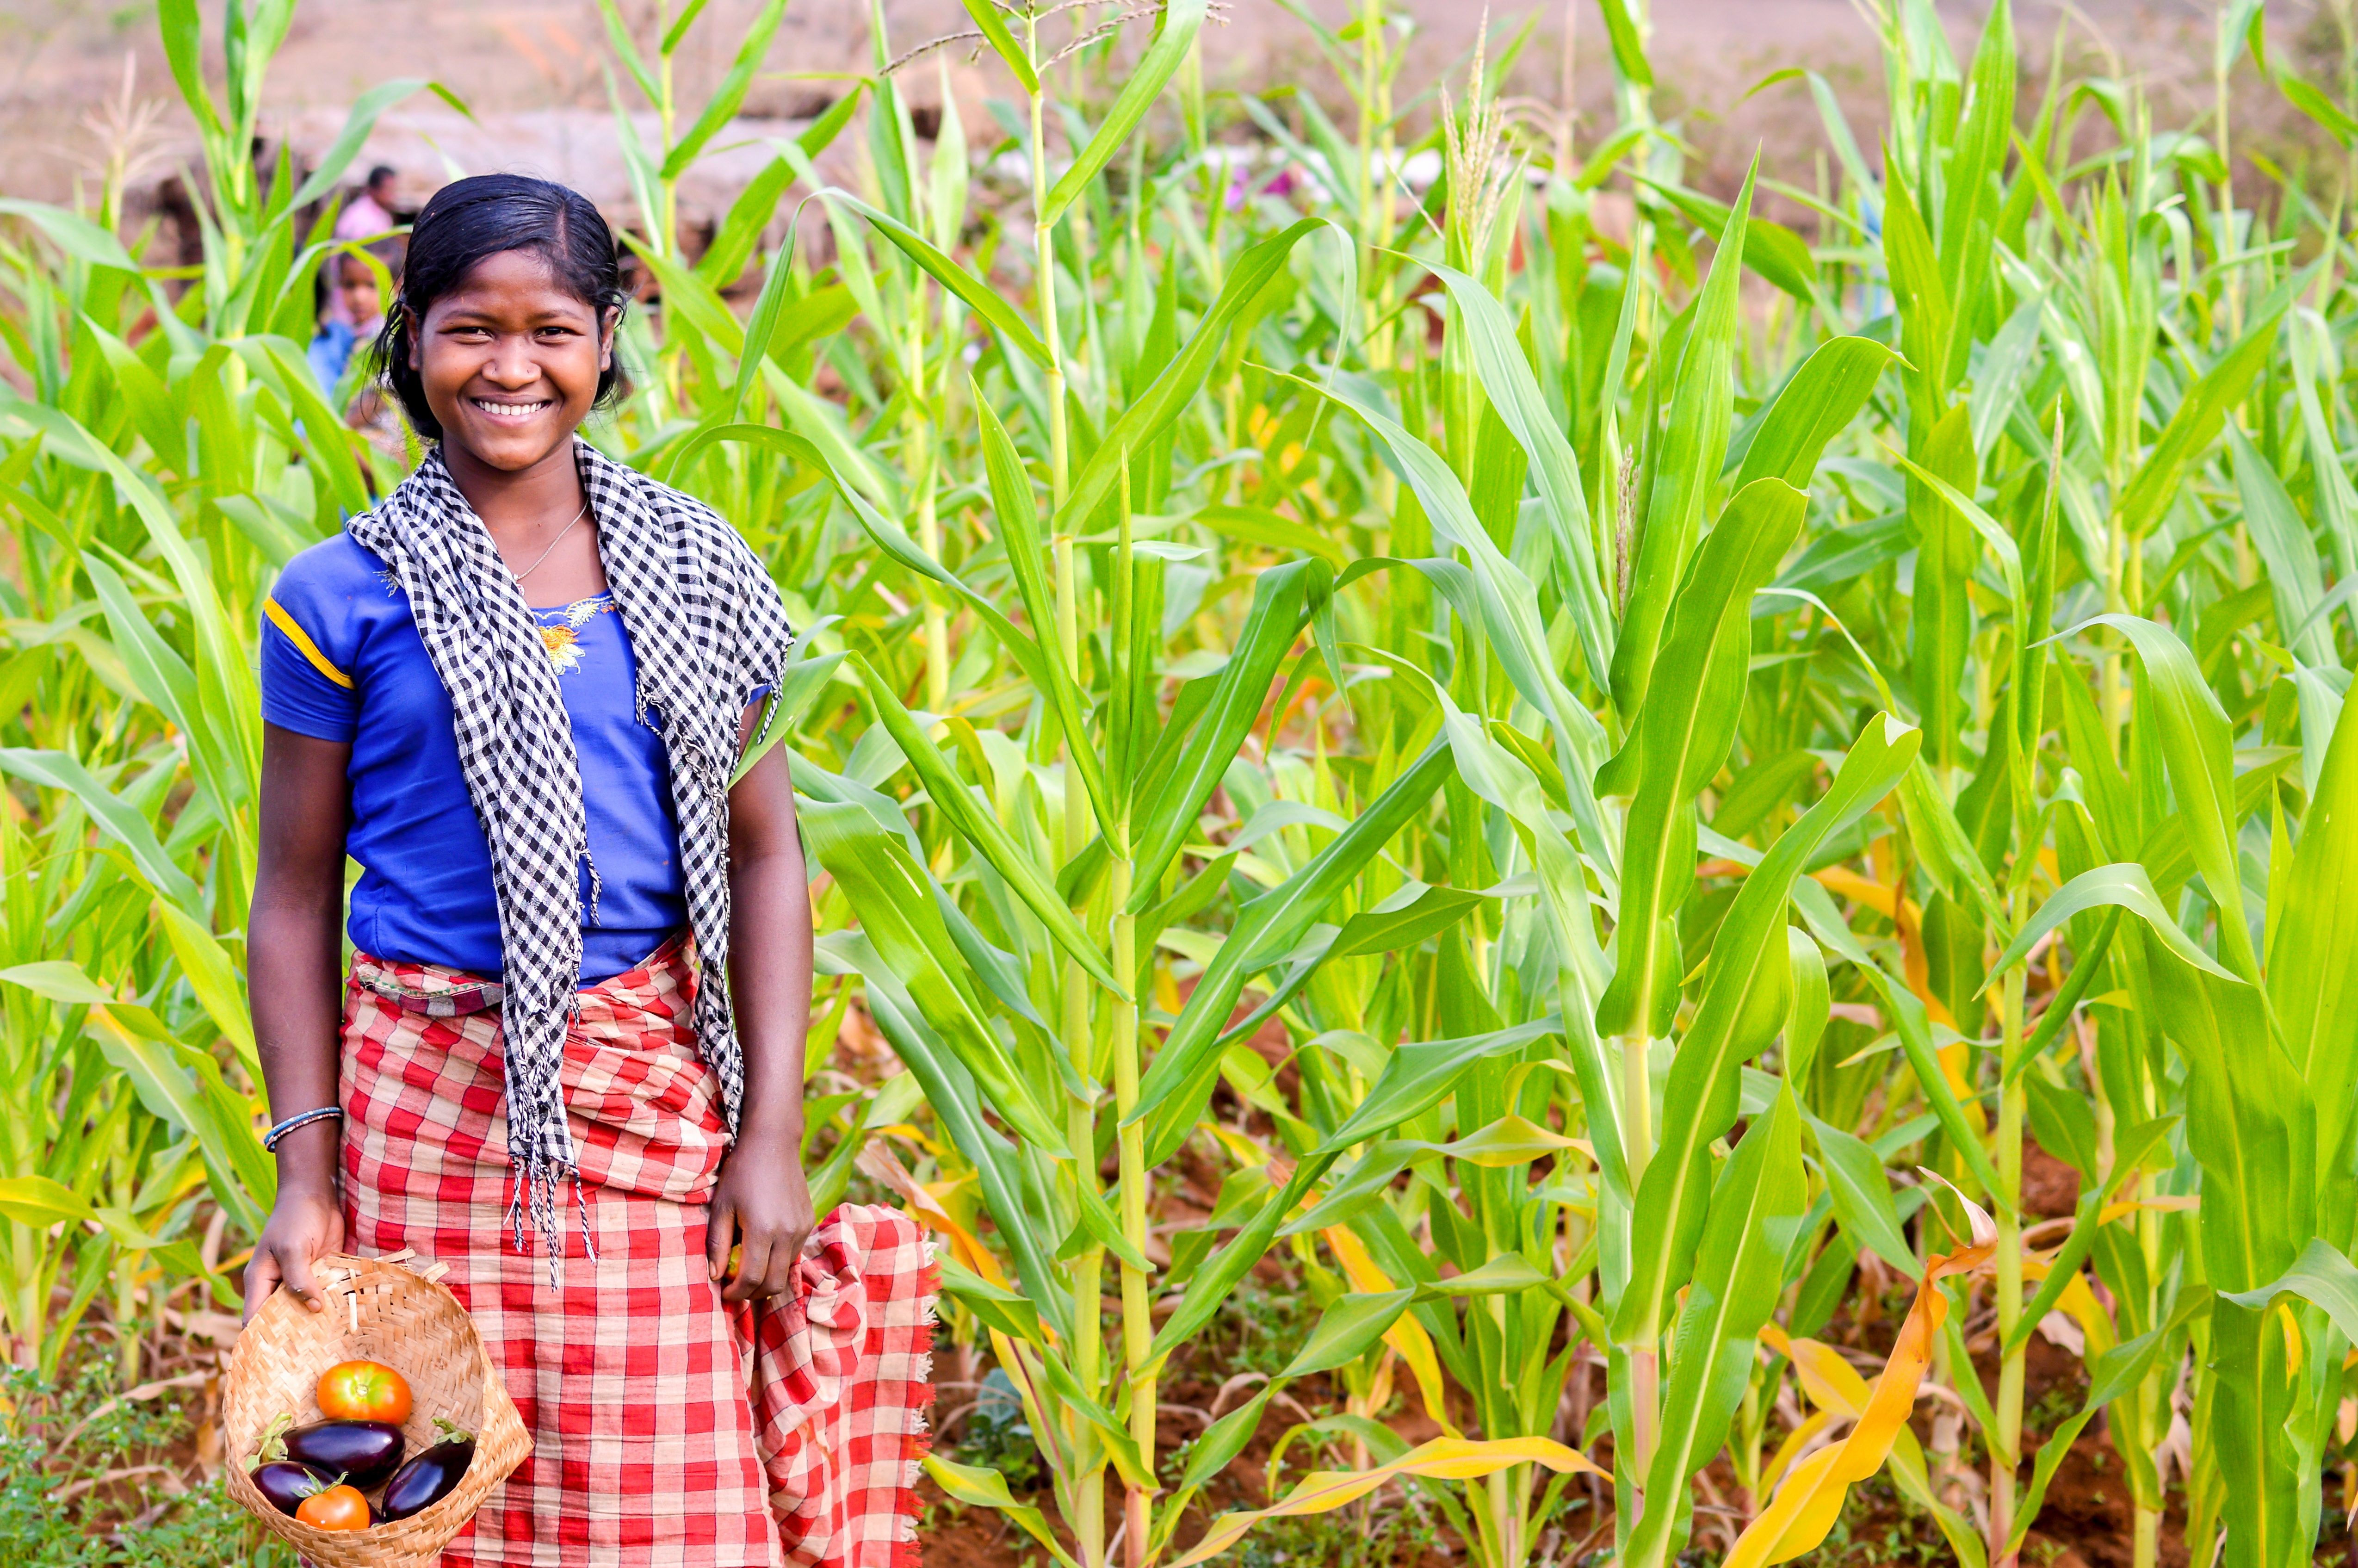 A girl happy to harvest diverse crops